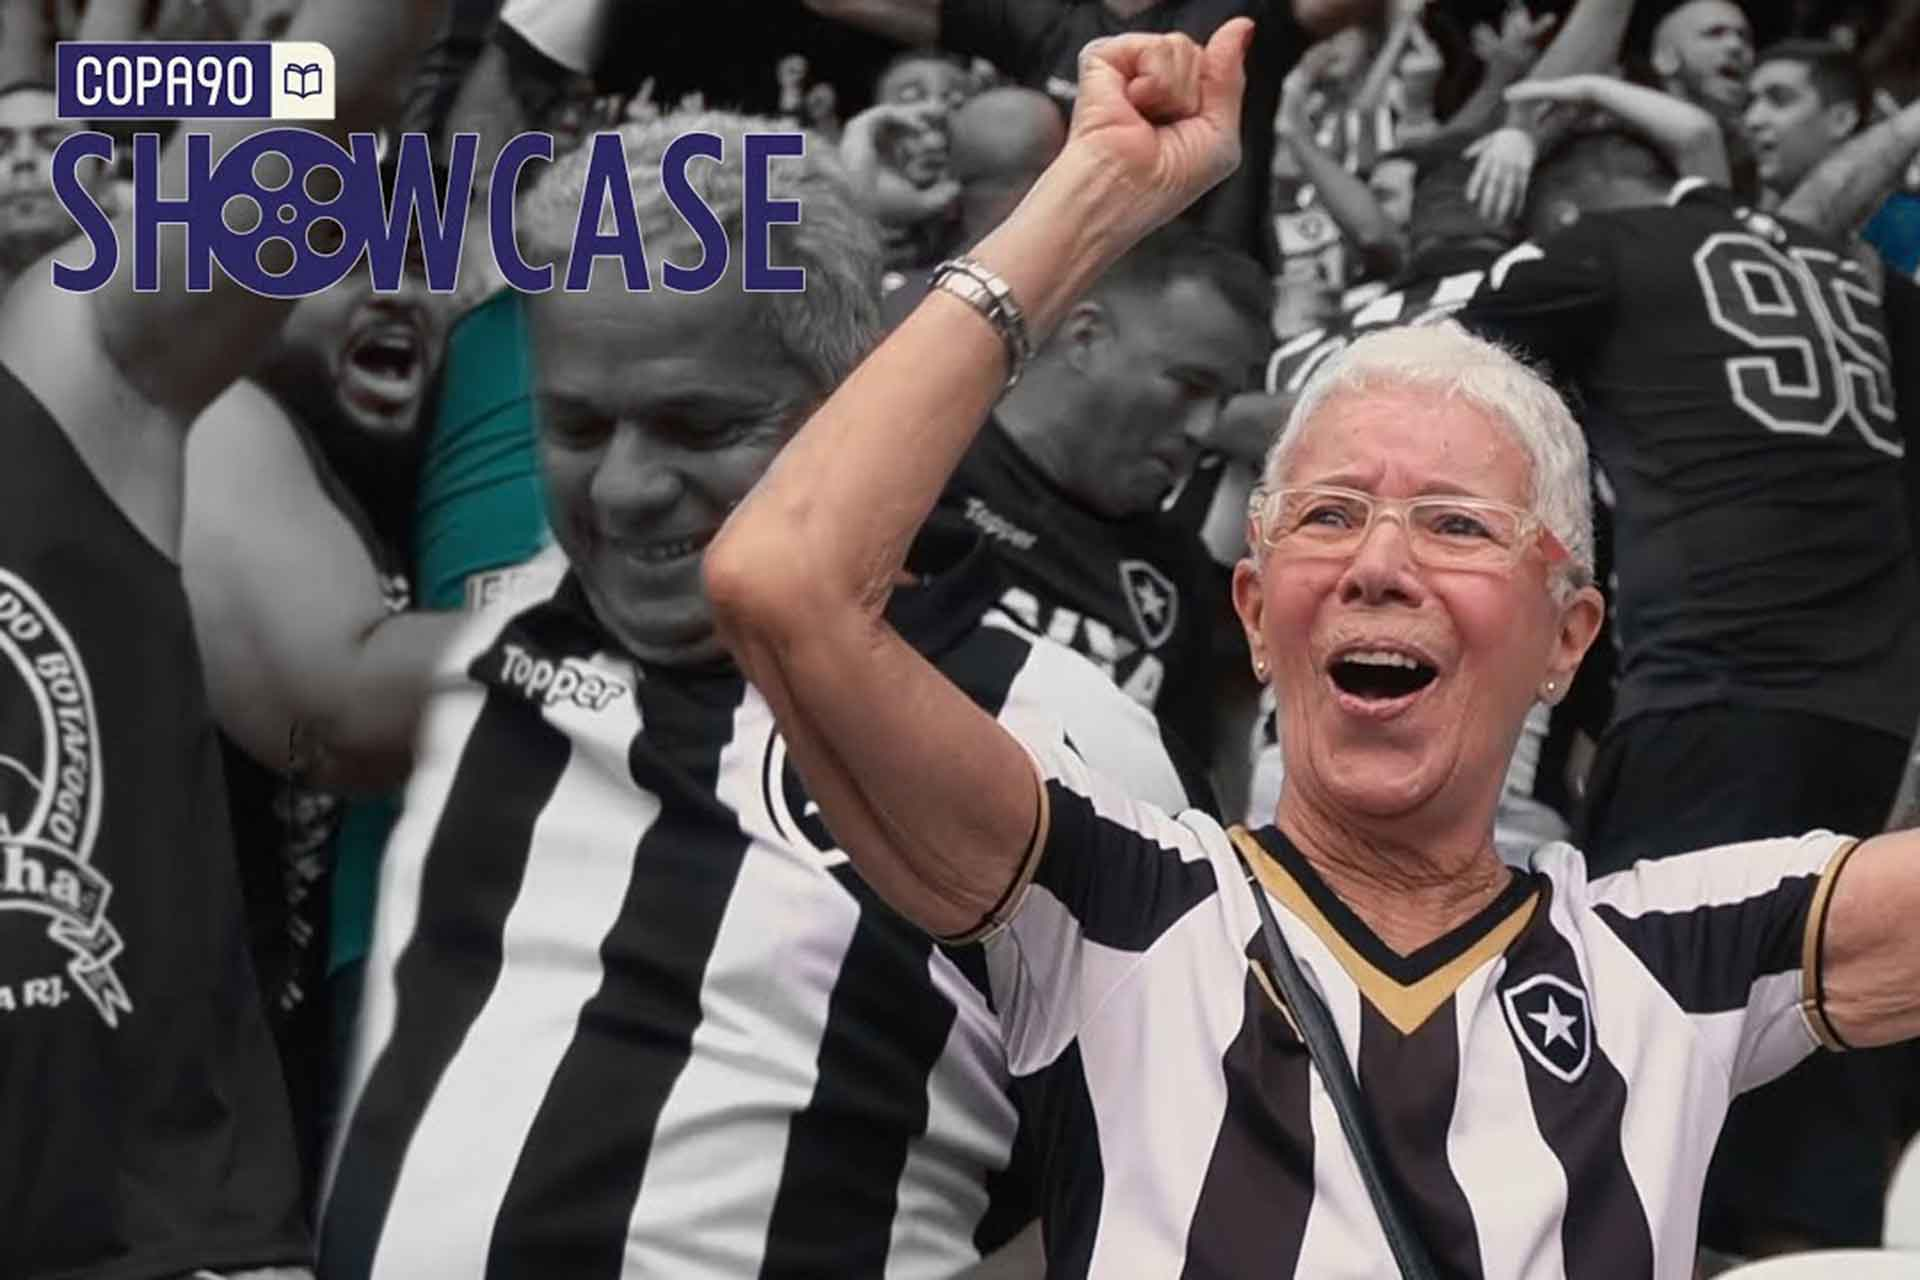 The Mad Grandma: Botafogo's 83-year-old superfan